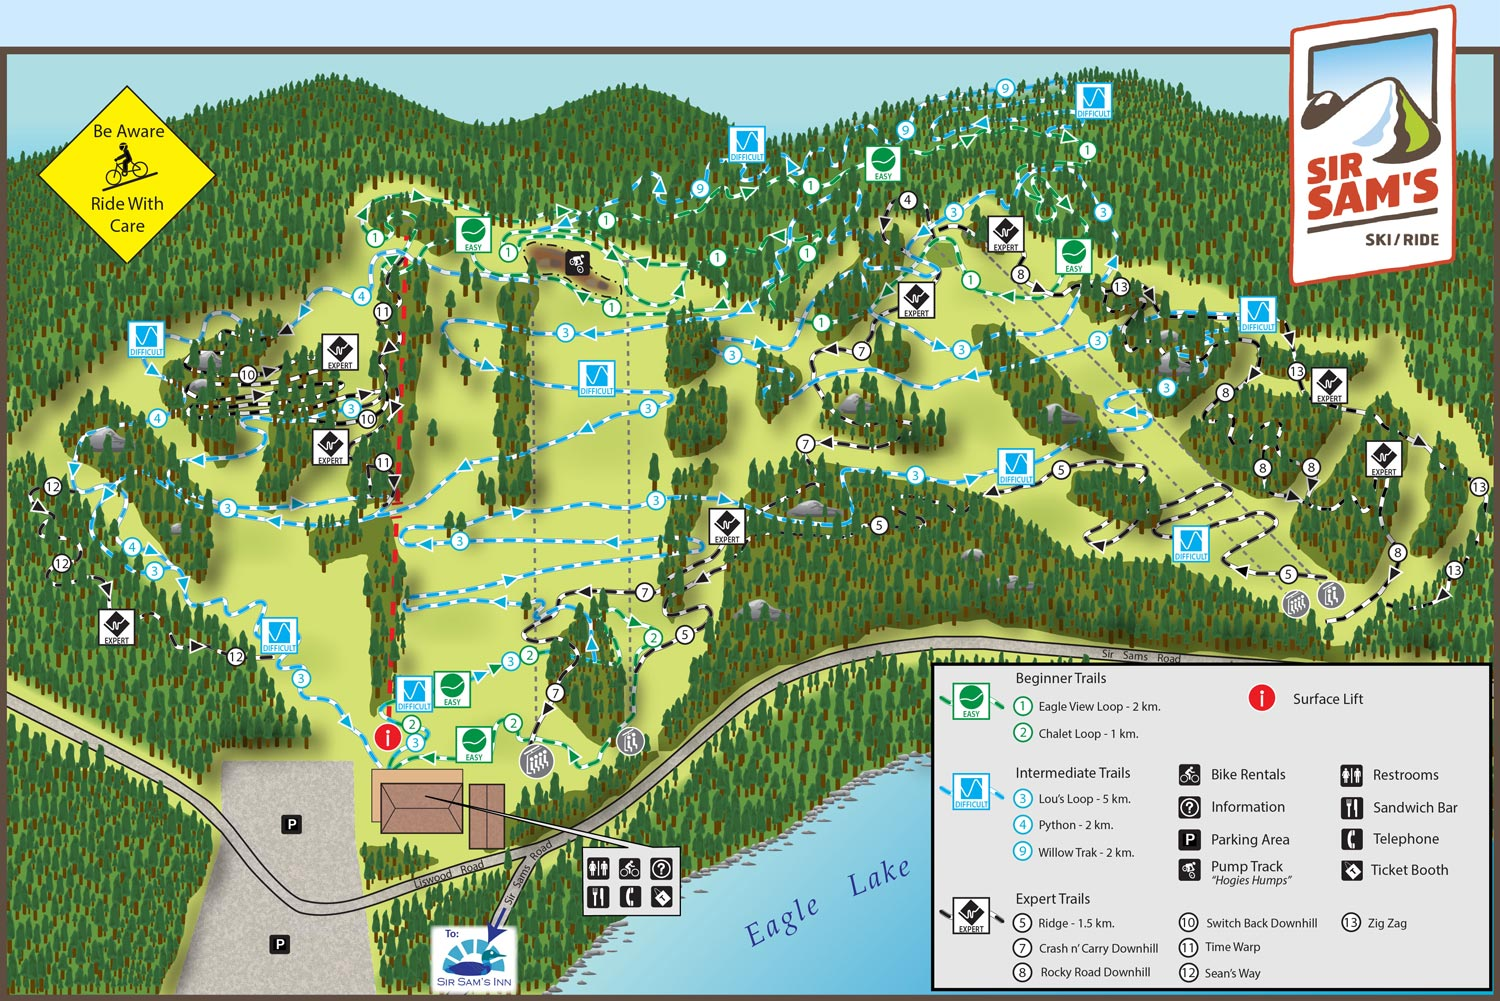 Sir Sam's Mountain Bike Trail Map